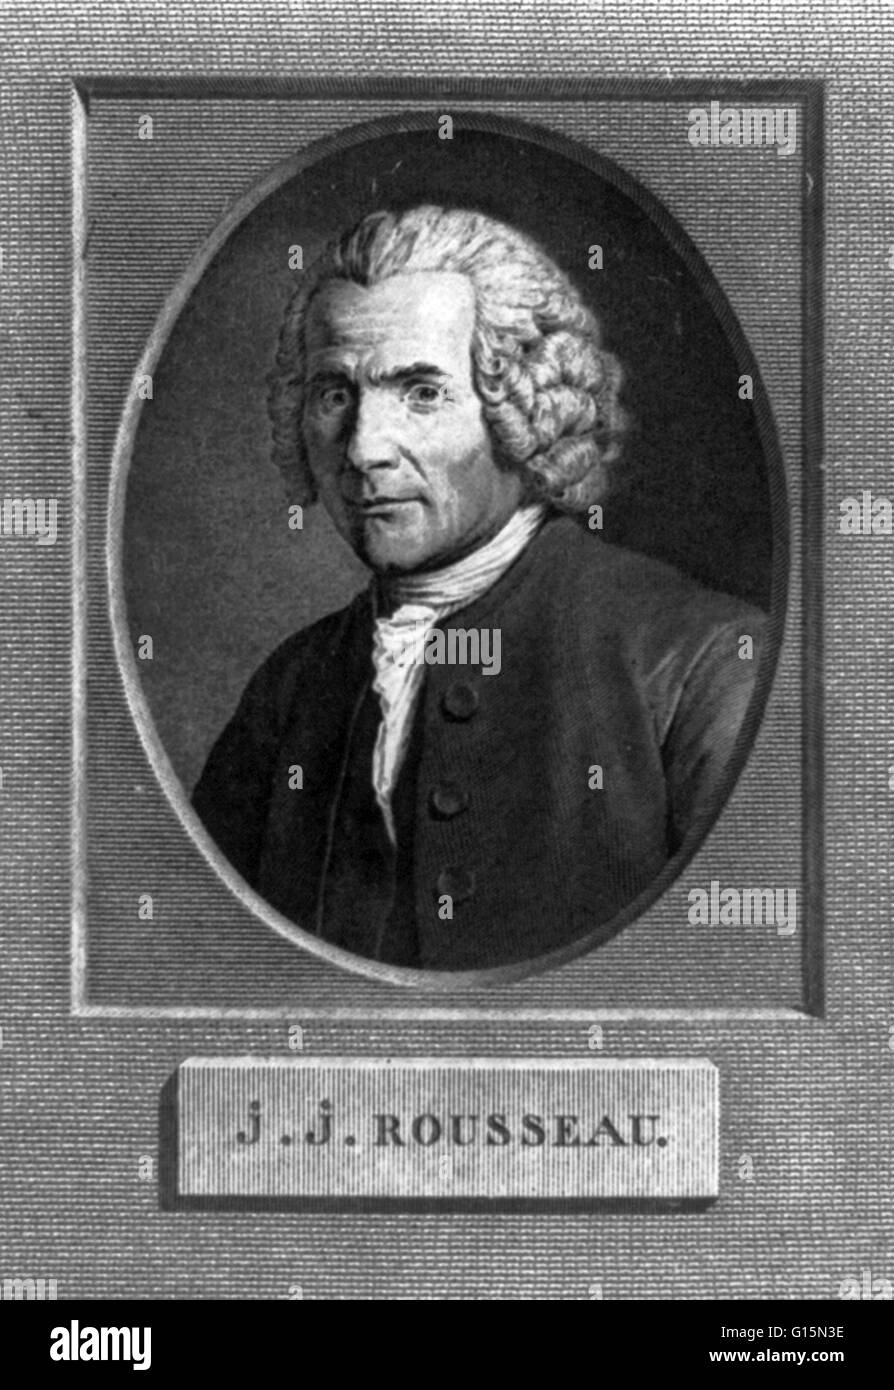 Jean-Jacques Rousseau (June 28, 1712 - July 2, 1778) was a Swiss philosopher, writer, and composer of 18th century - Stock Image